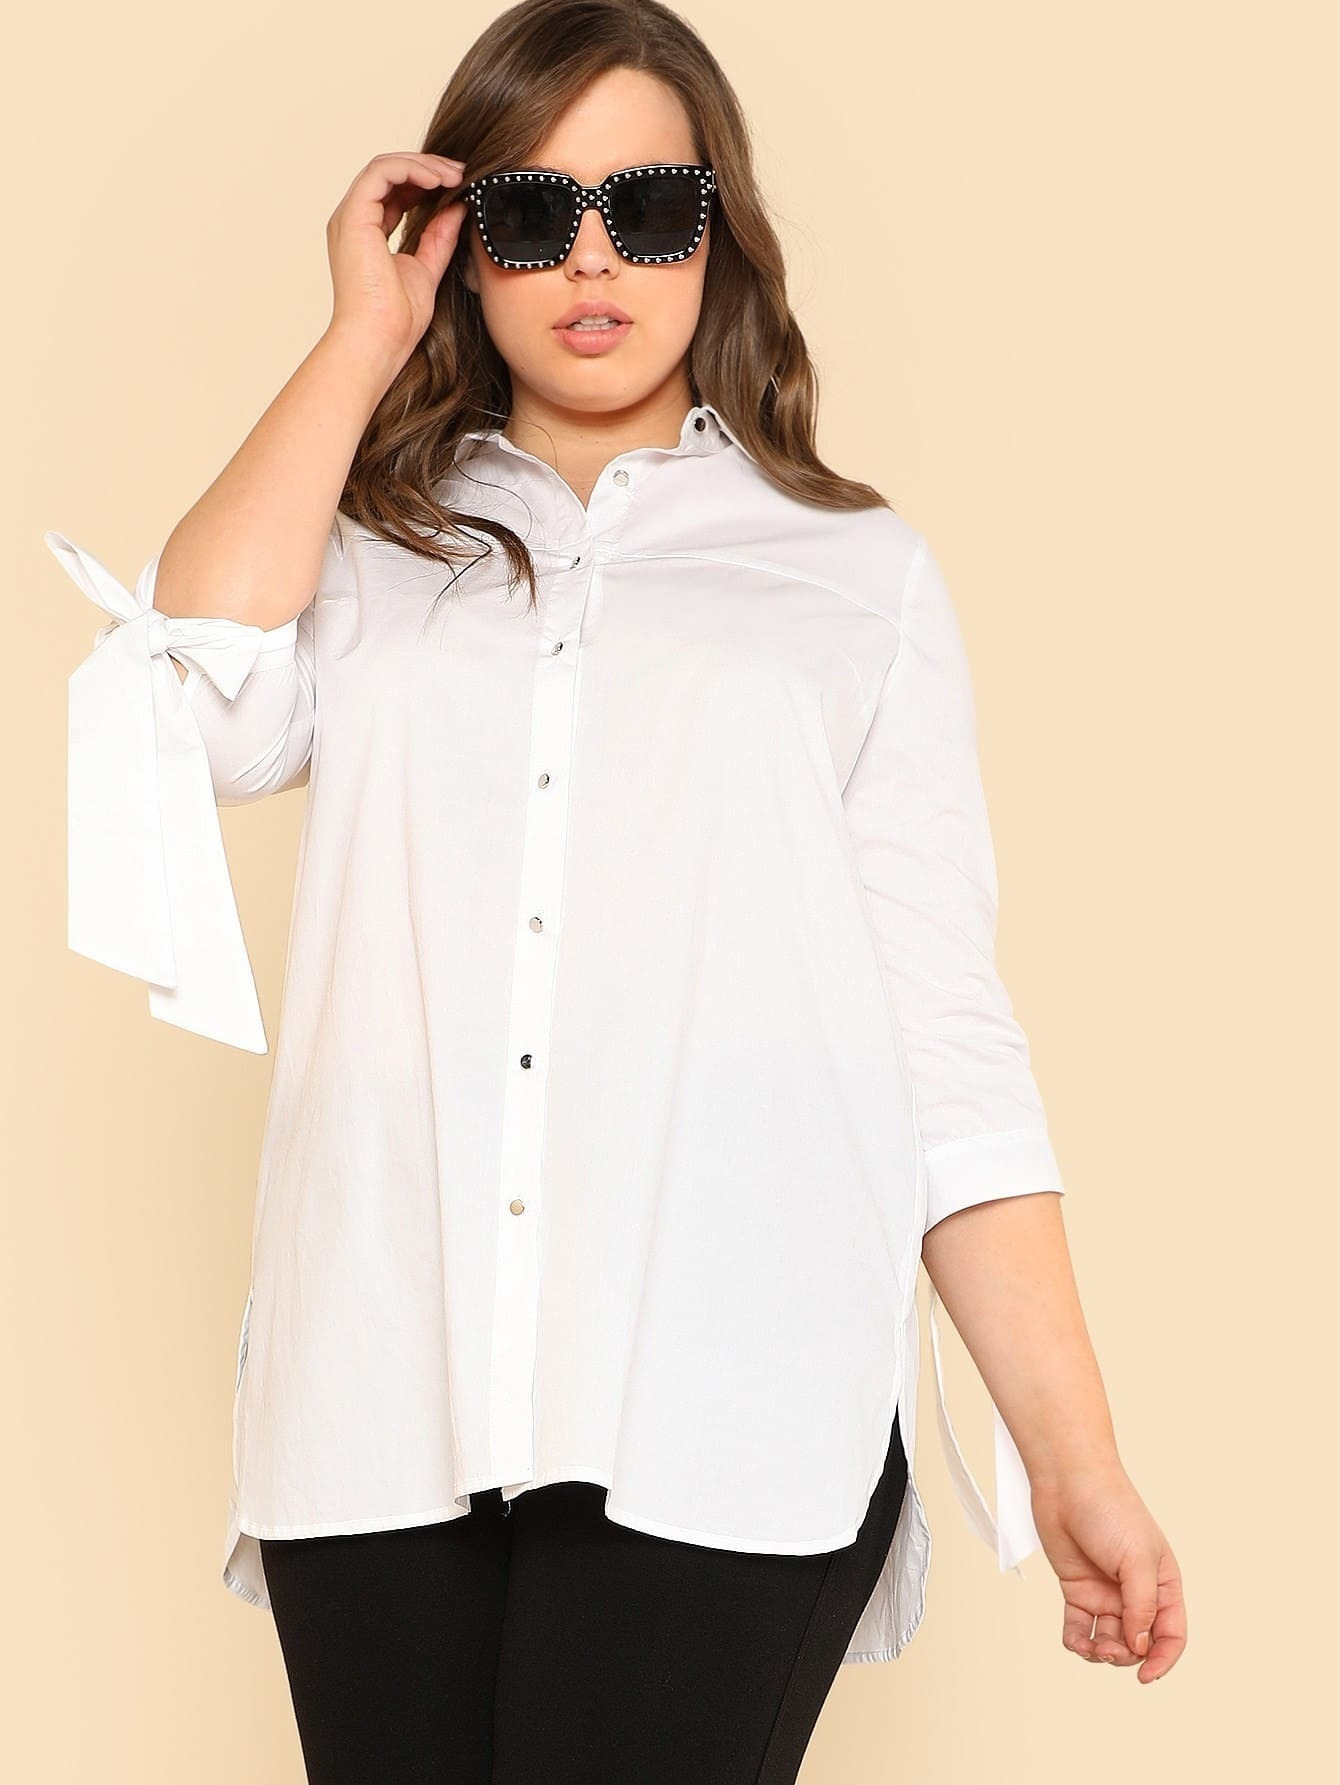 Tie Sleeve Button Up Longline Blouse inc new bright white women s size small s tie front button up blouse $59 461